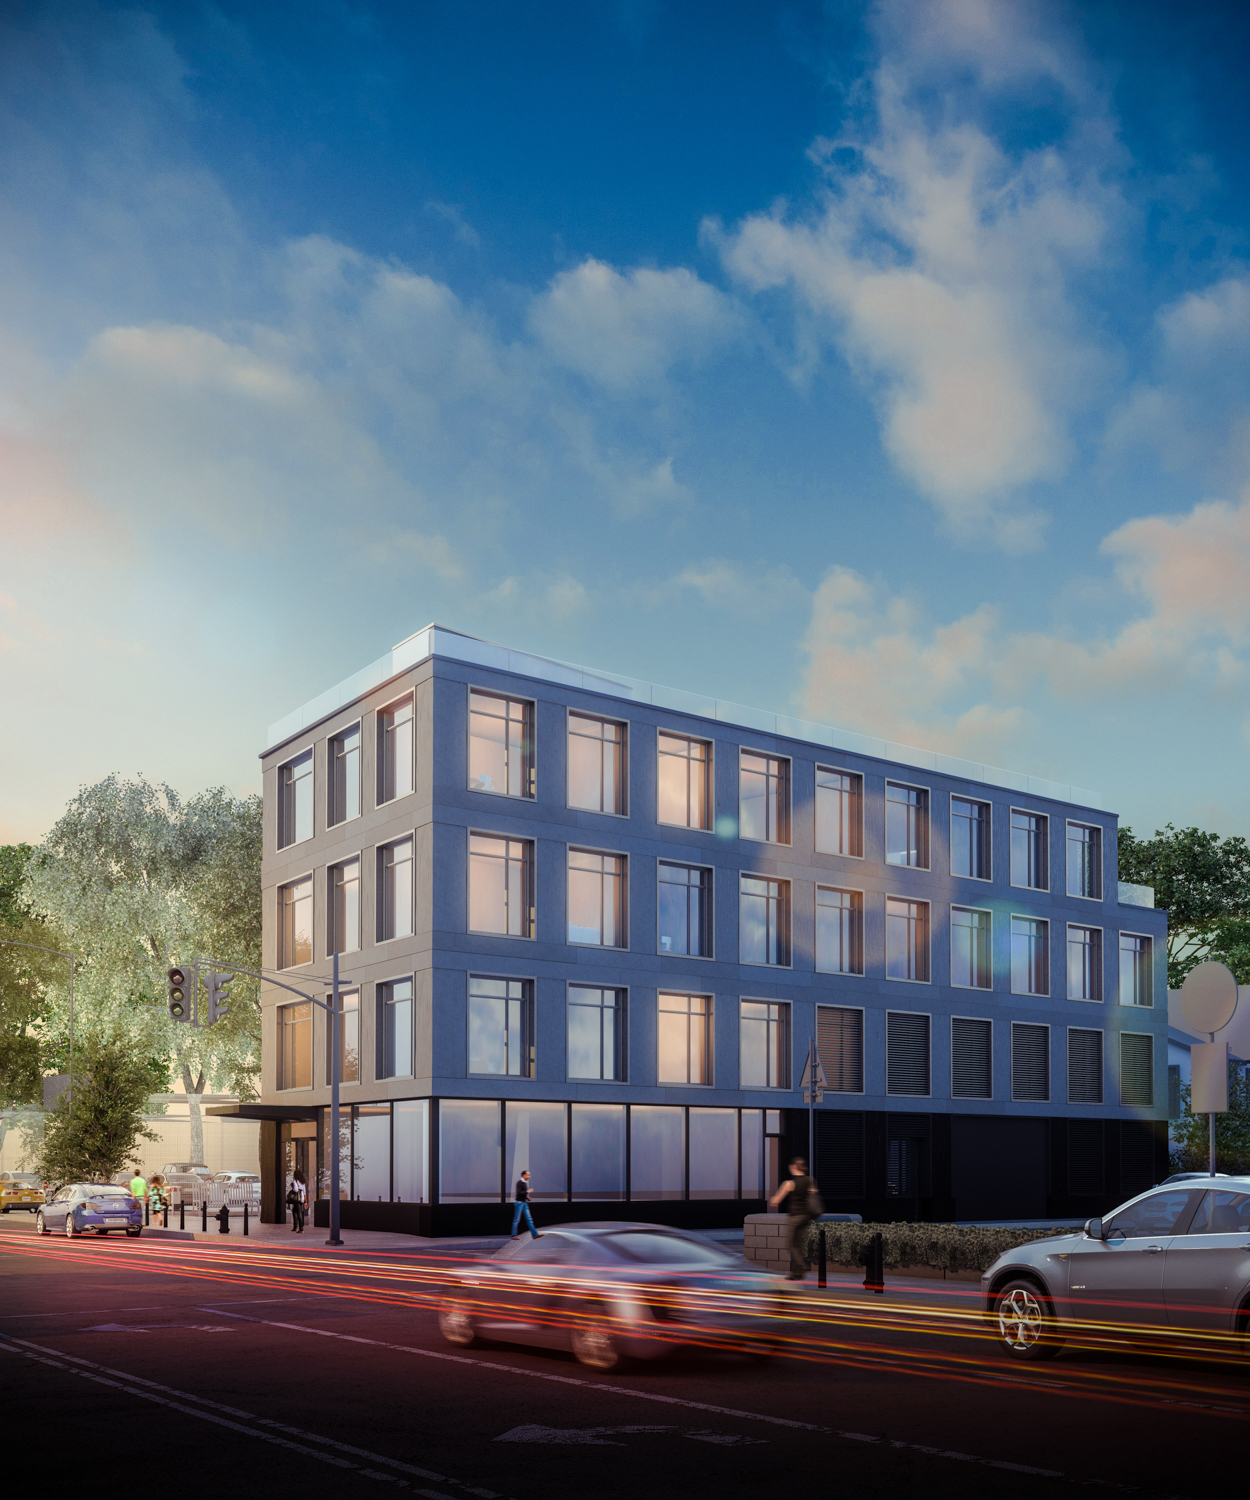 136-21 Hillside Avenue, rendering by Issac & Stern PC